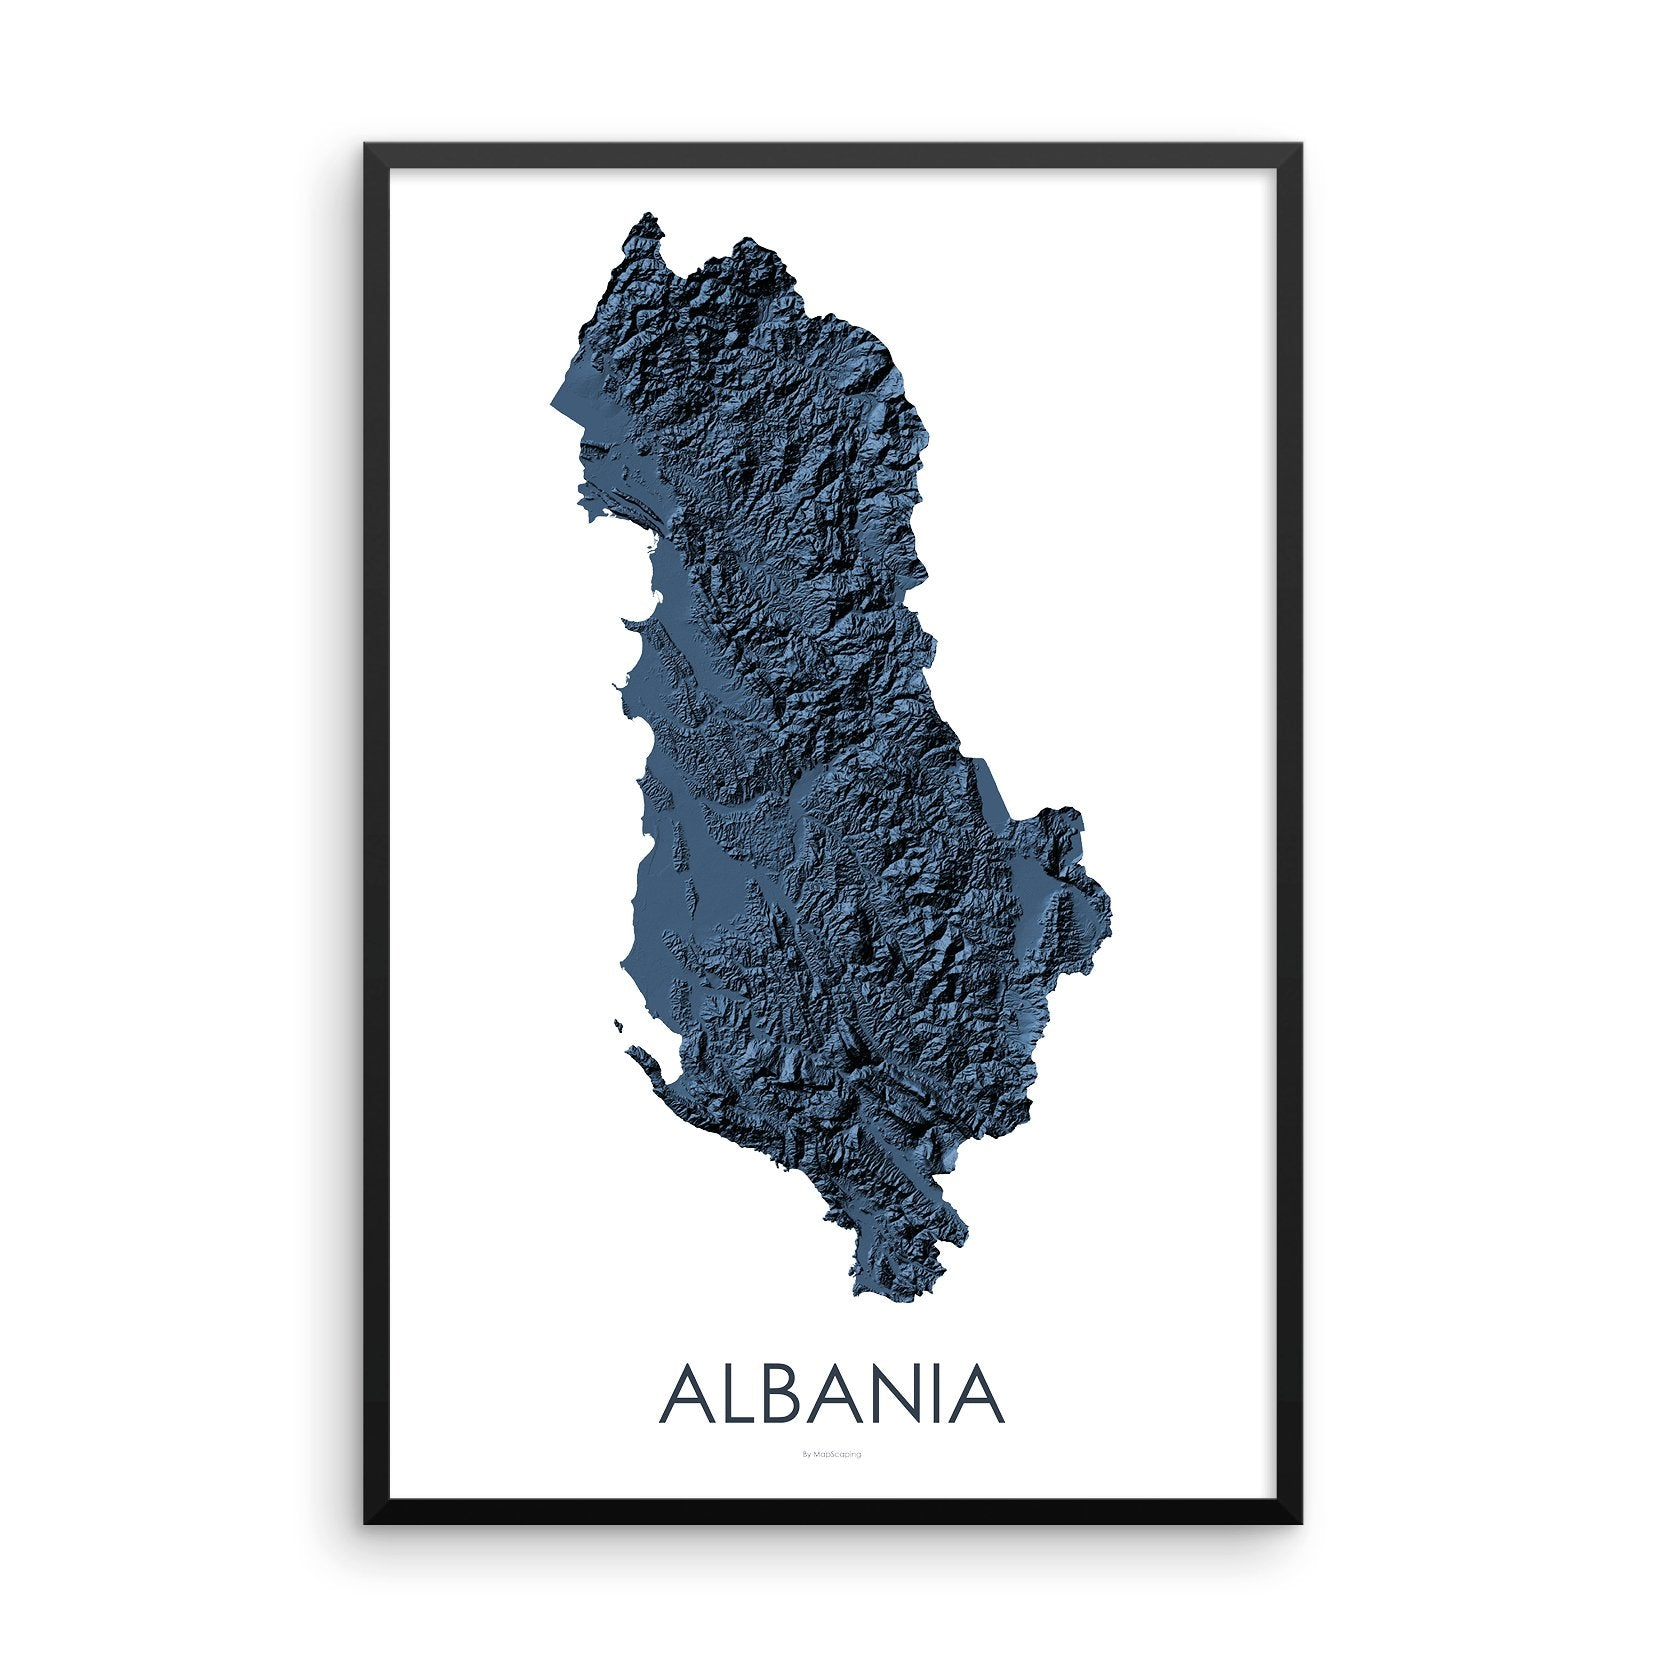 Large Albania Map in Blue - Topographic Map of Albanian landscape